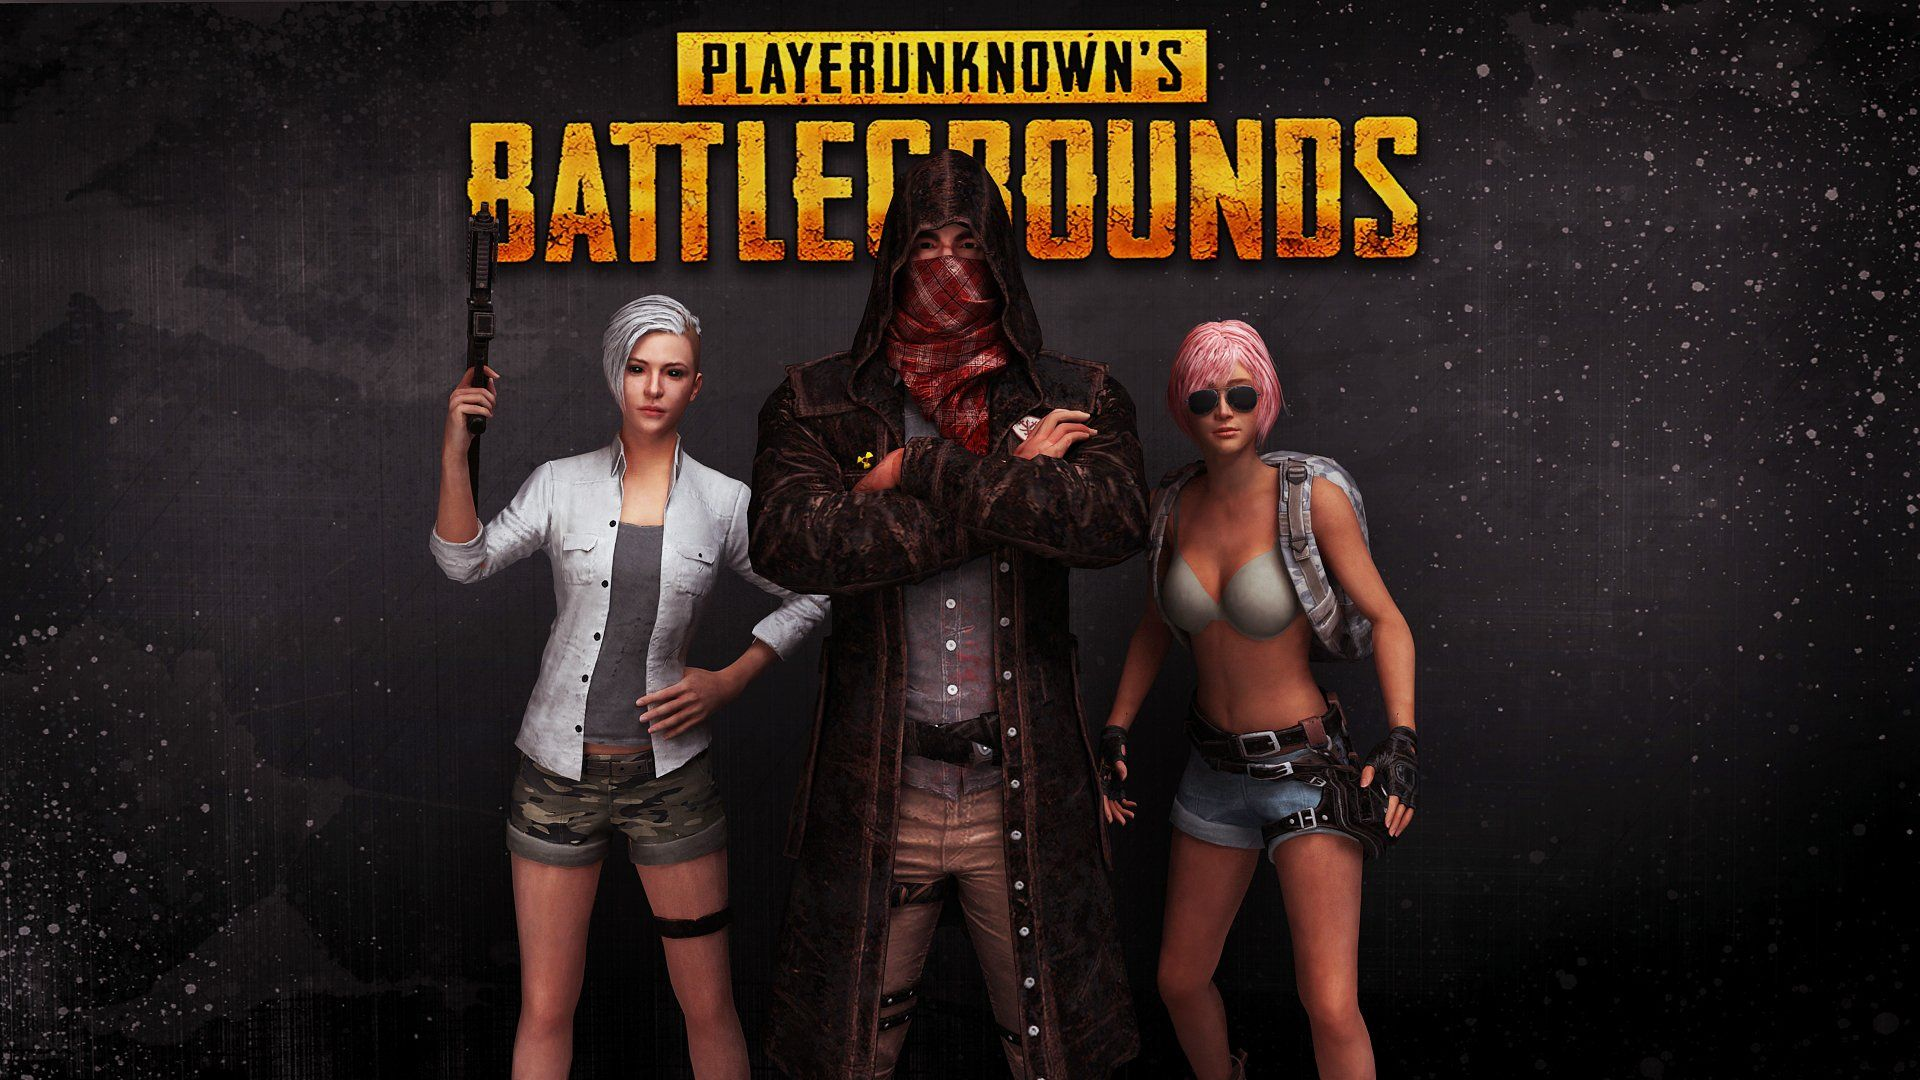 Pubg Battlegrounds Wallpaper